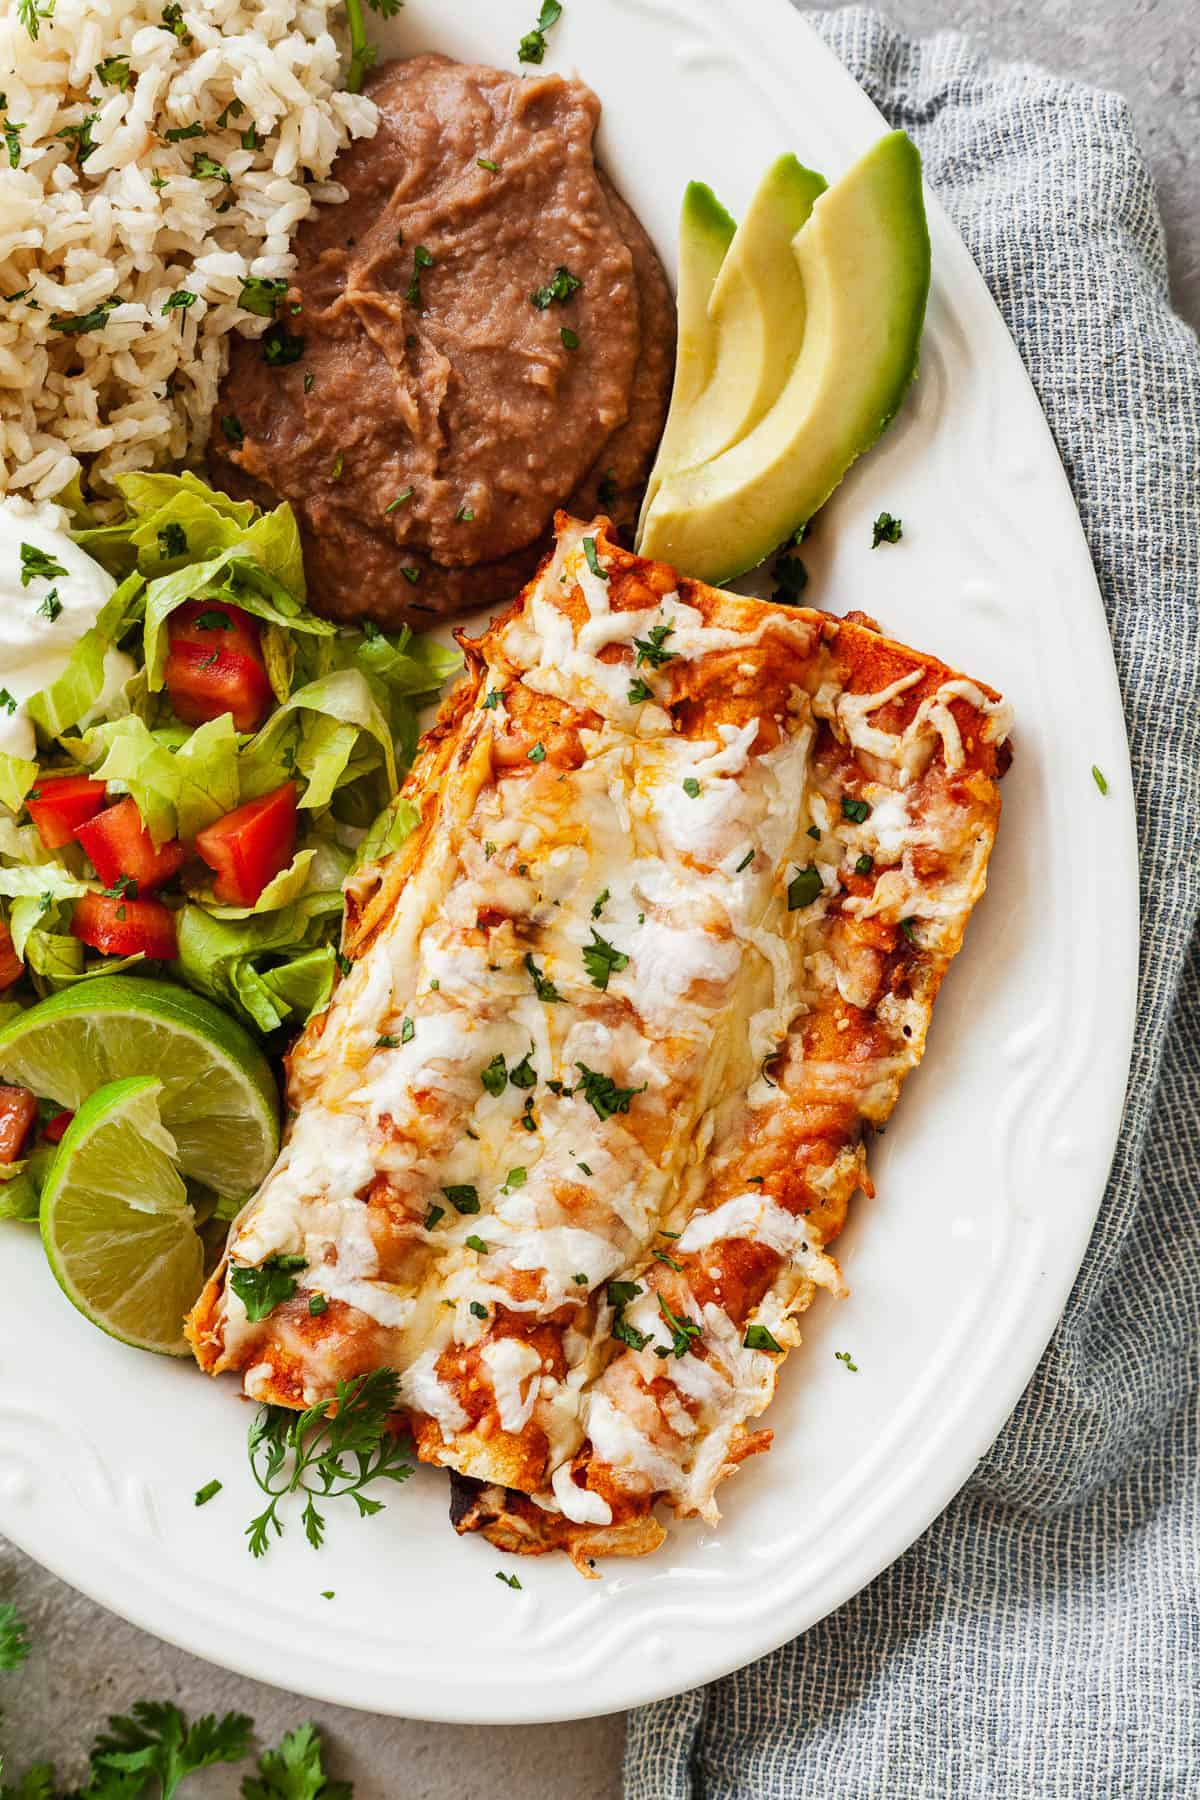 cheesy enchiladas on a plate with salad, rice, and beans